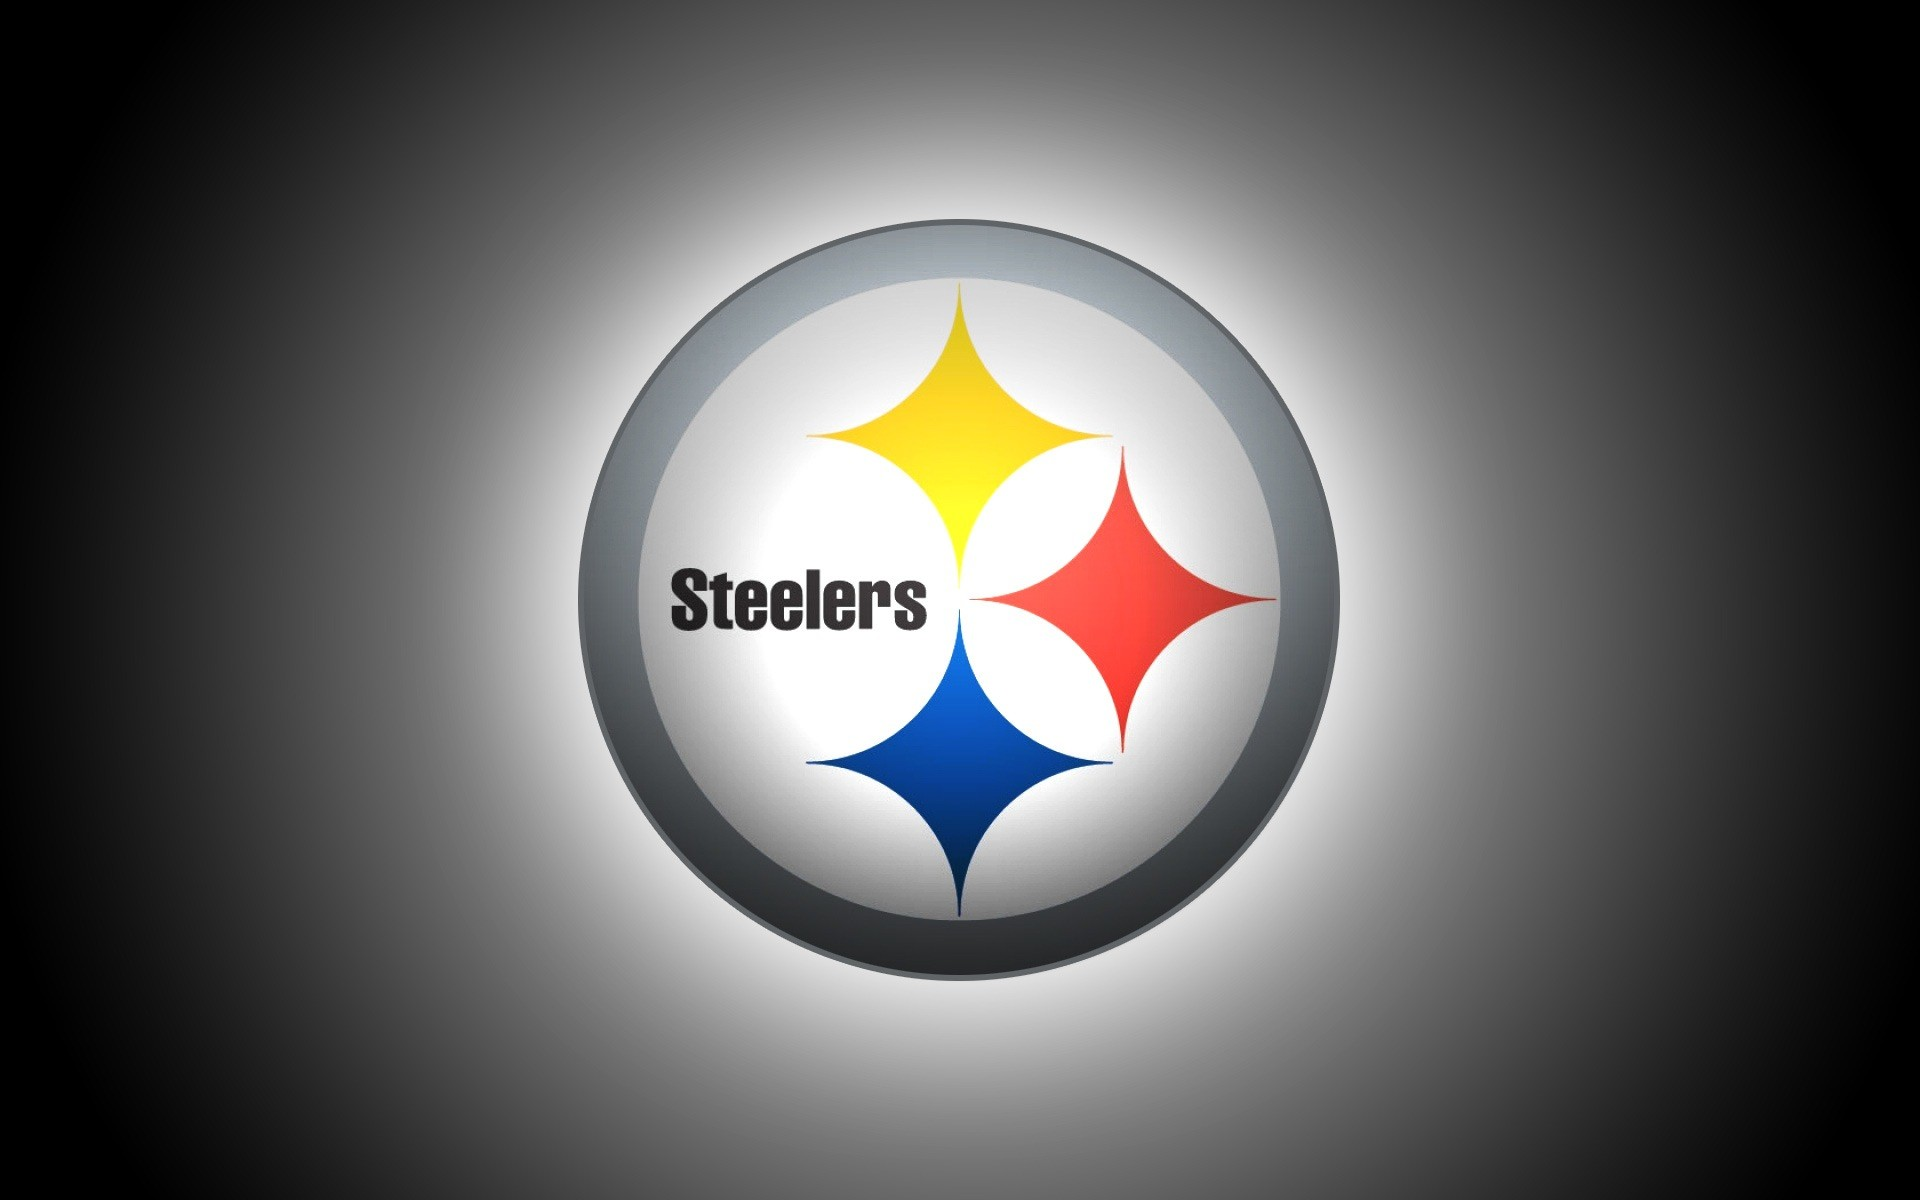 1920x1200 - Steelers Desktop 36